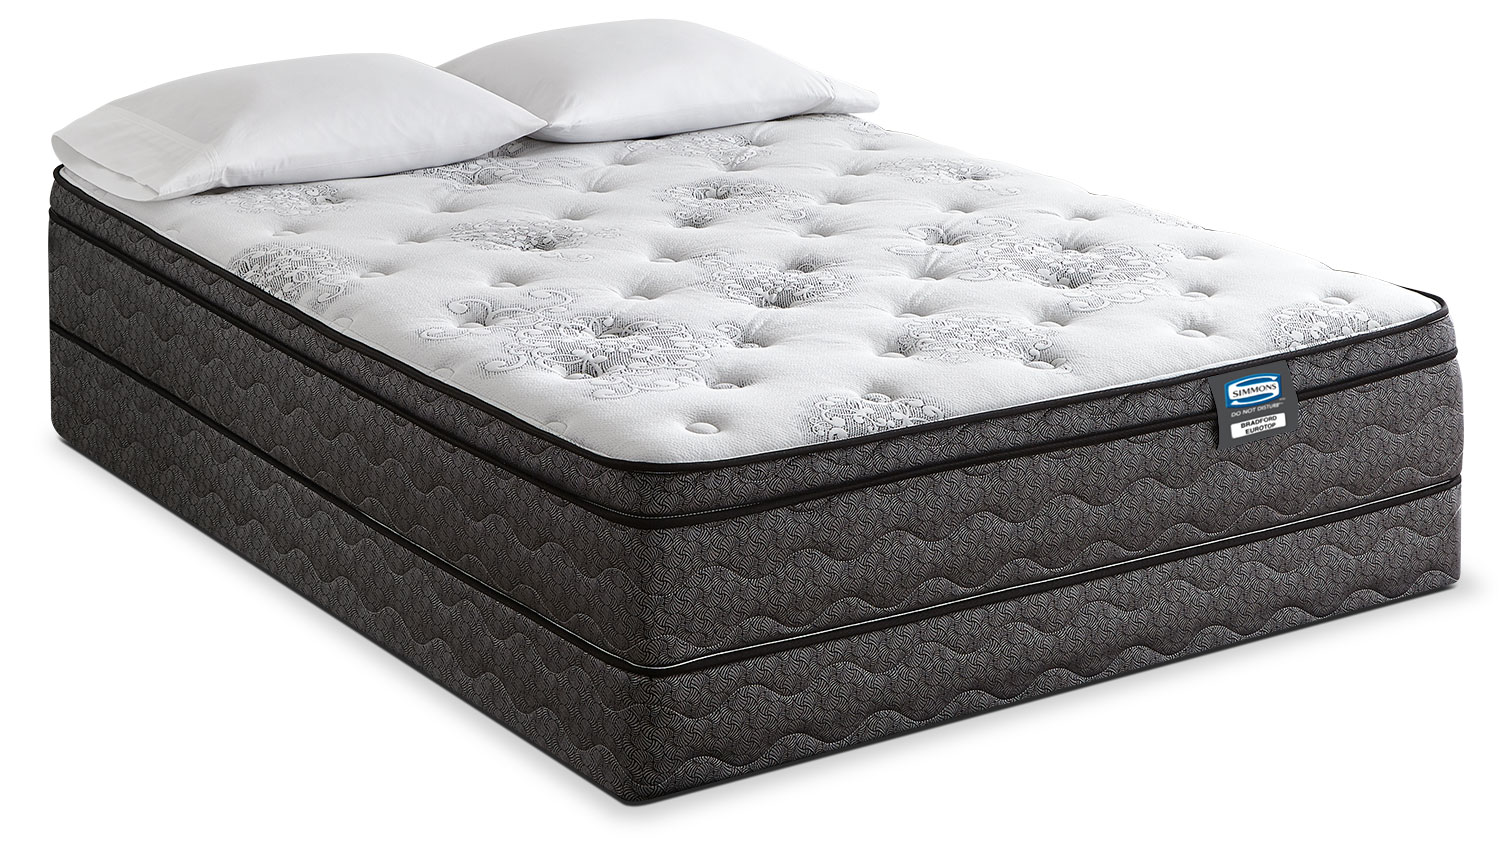 Simmons Do Not Disturb Bradford Euro-Top Firm Twin Mattress Set